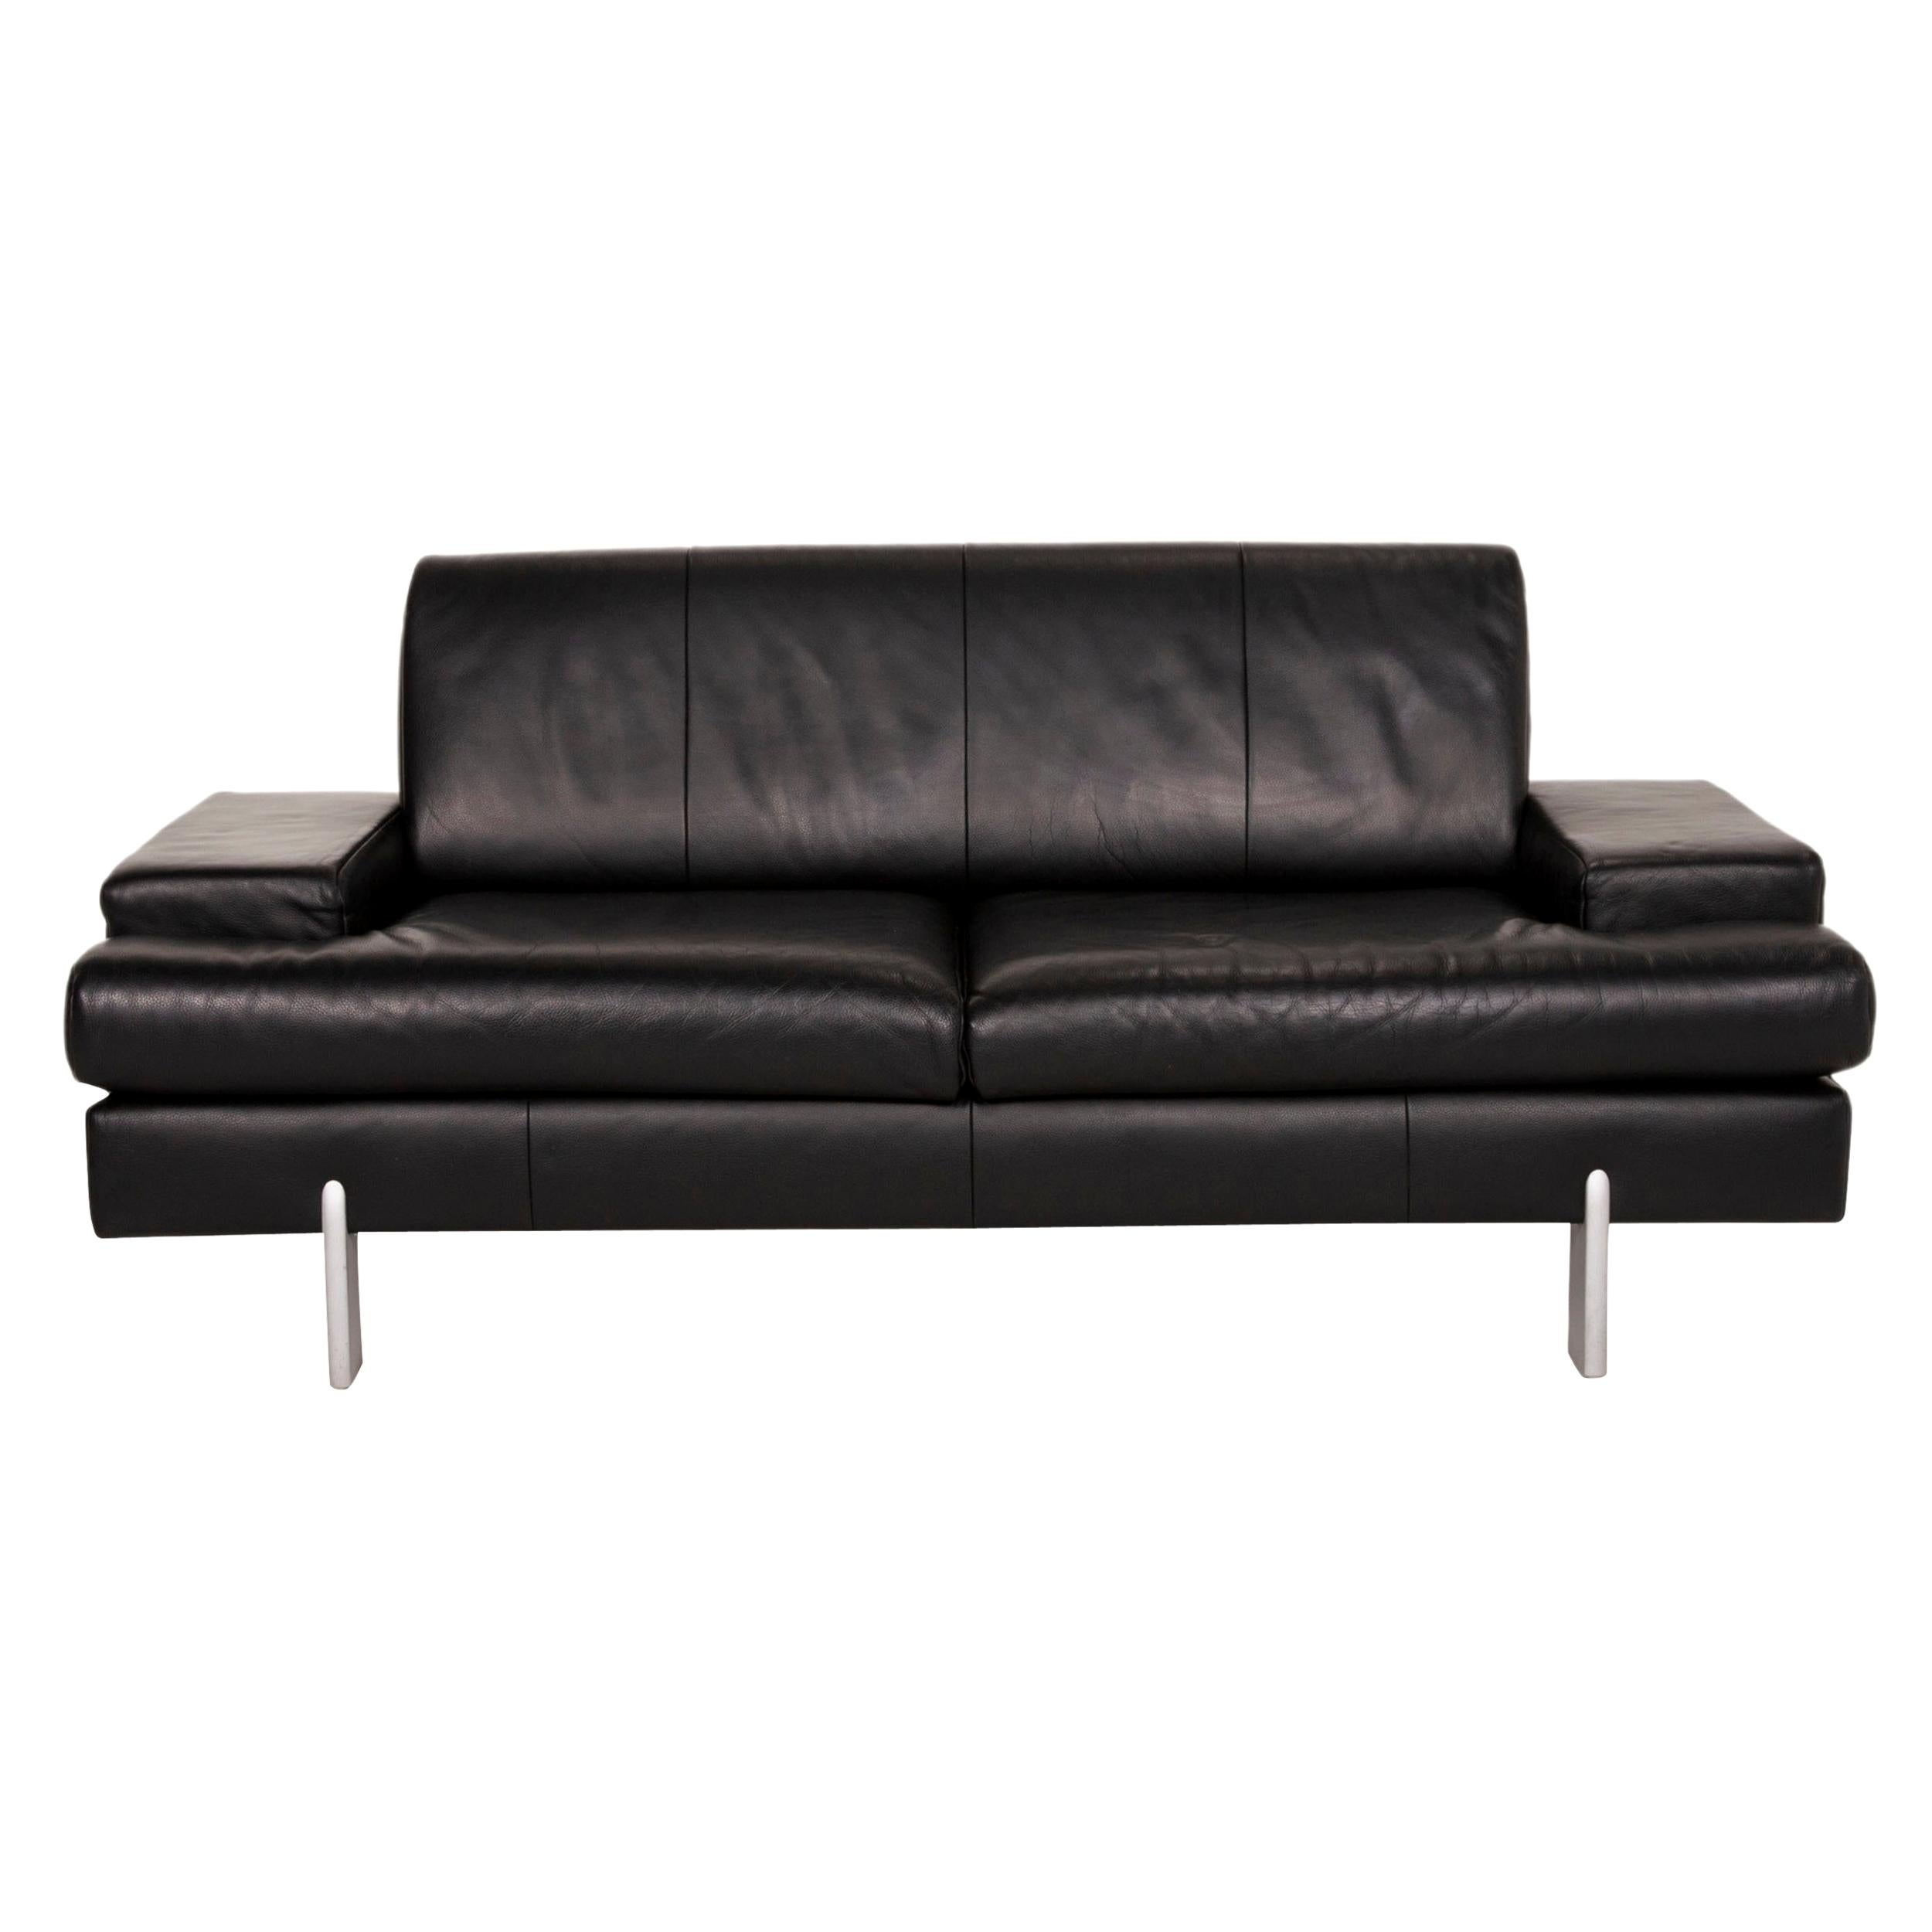 Rolf Benz Ak 644 Leather Sofa Black Two-Seater Couch